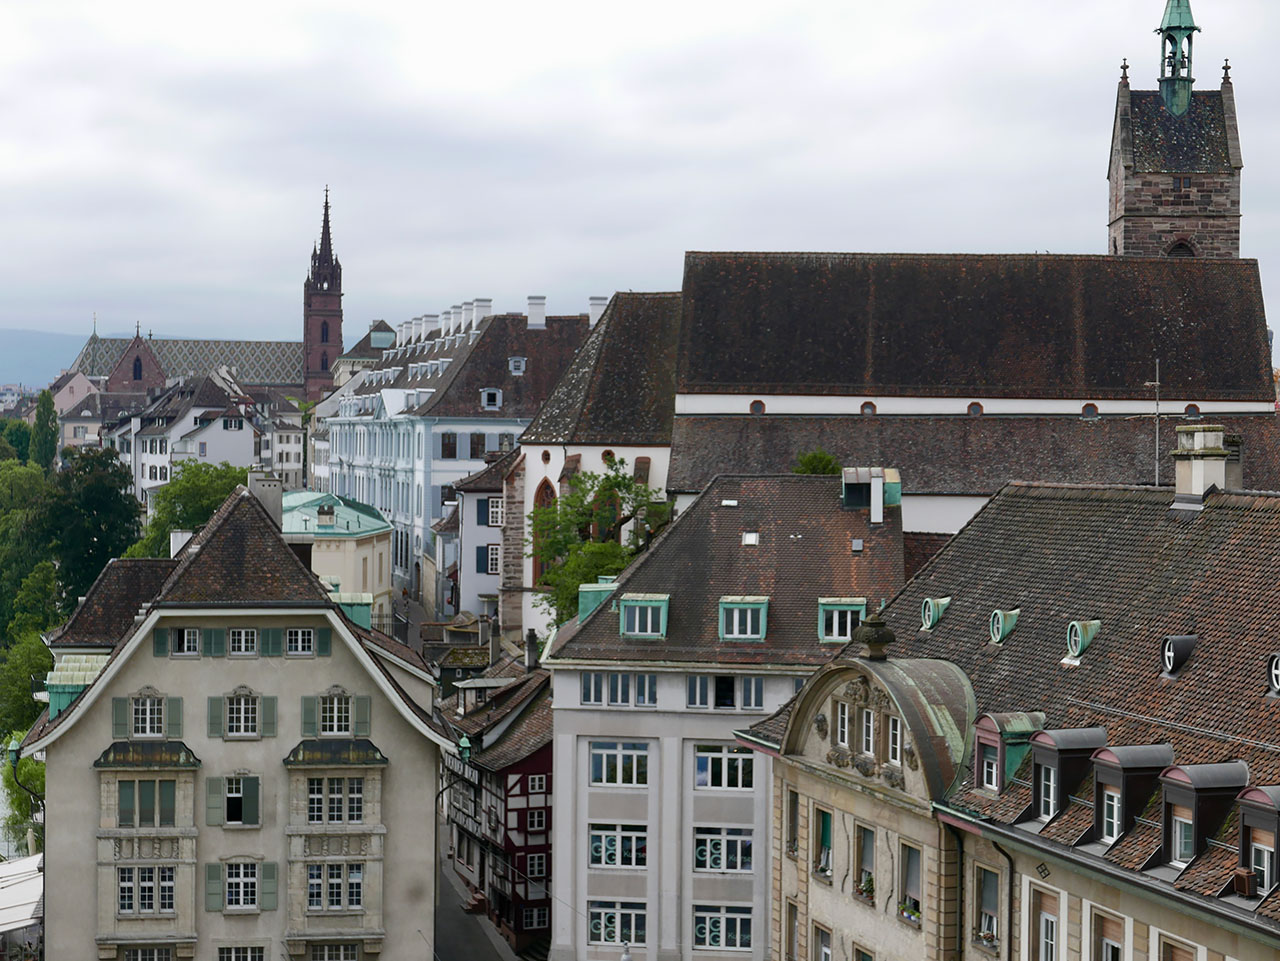 Cara Sharratt Travel - Basel, Switzerland - Rooftops & façades